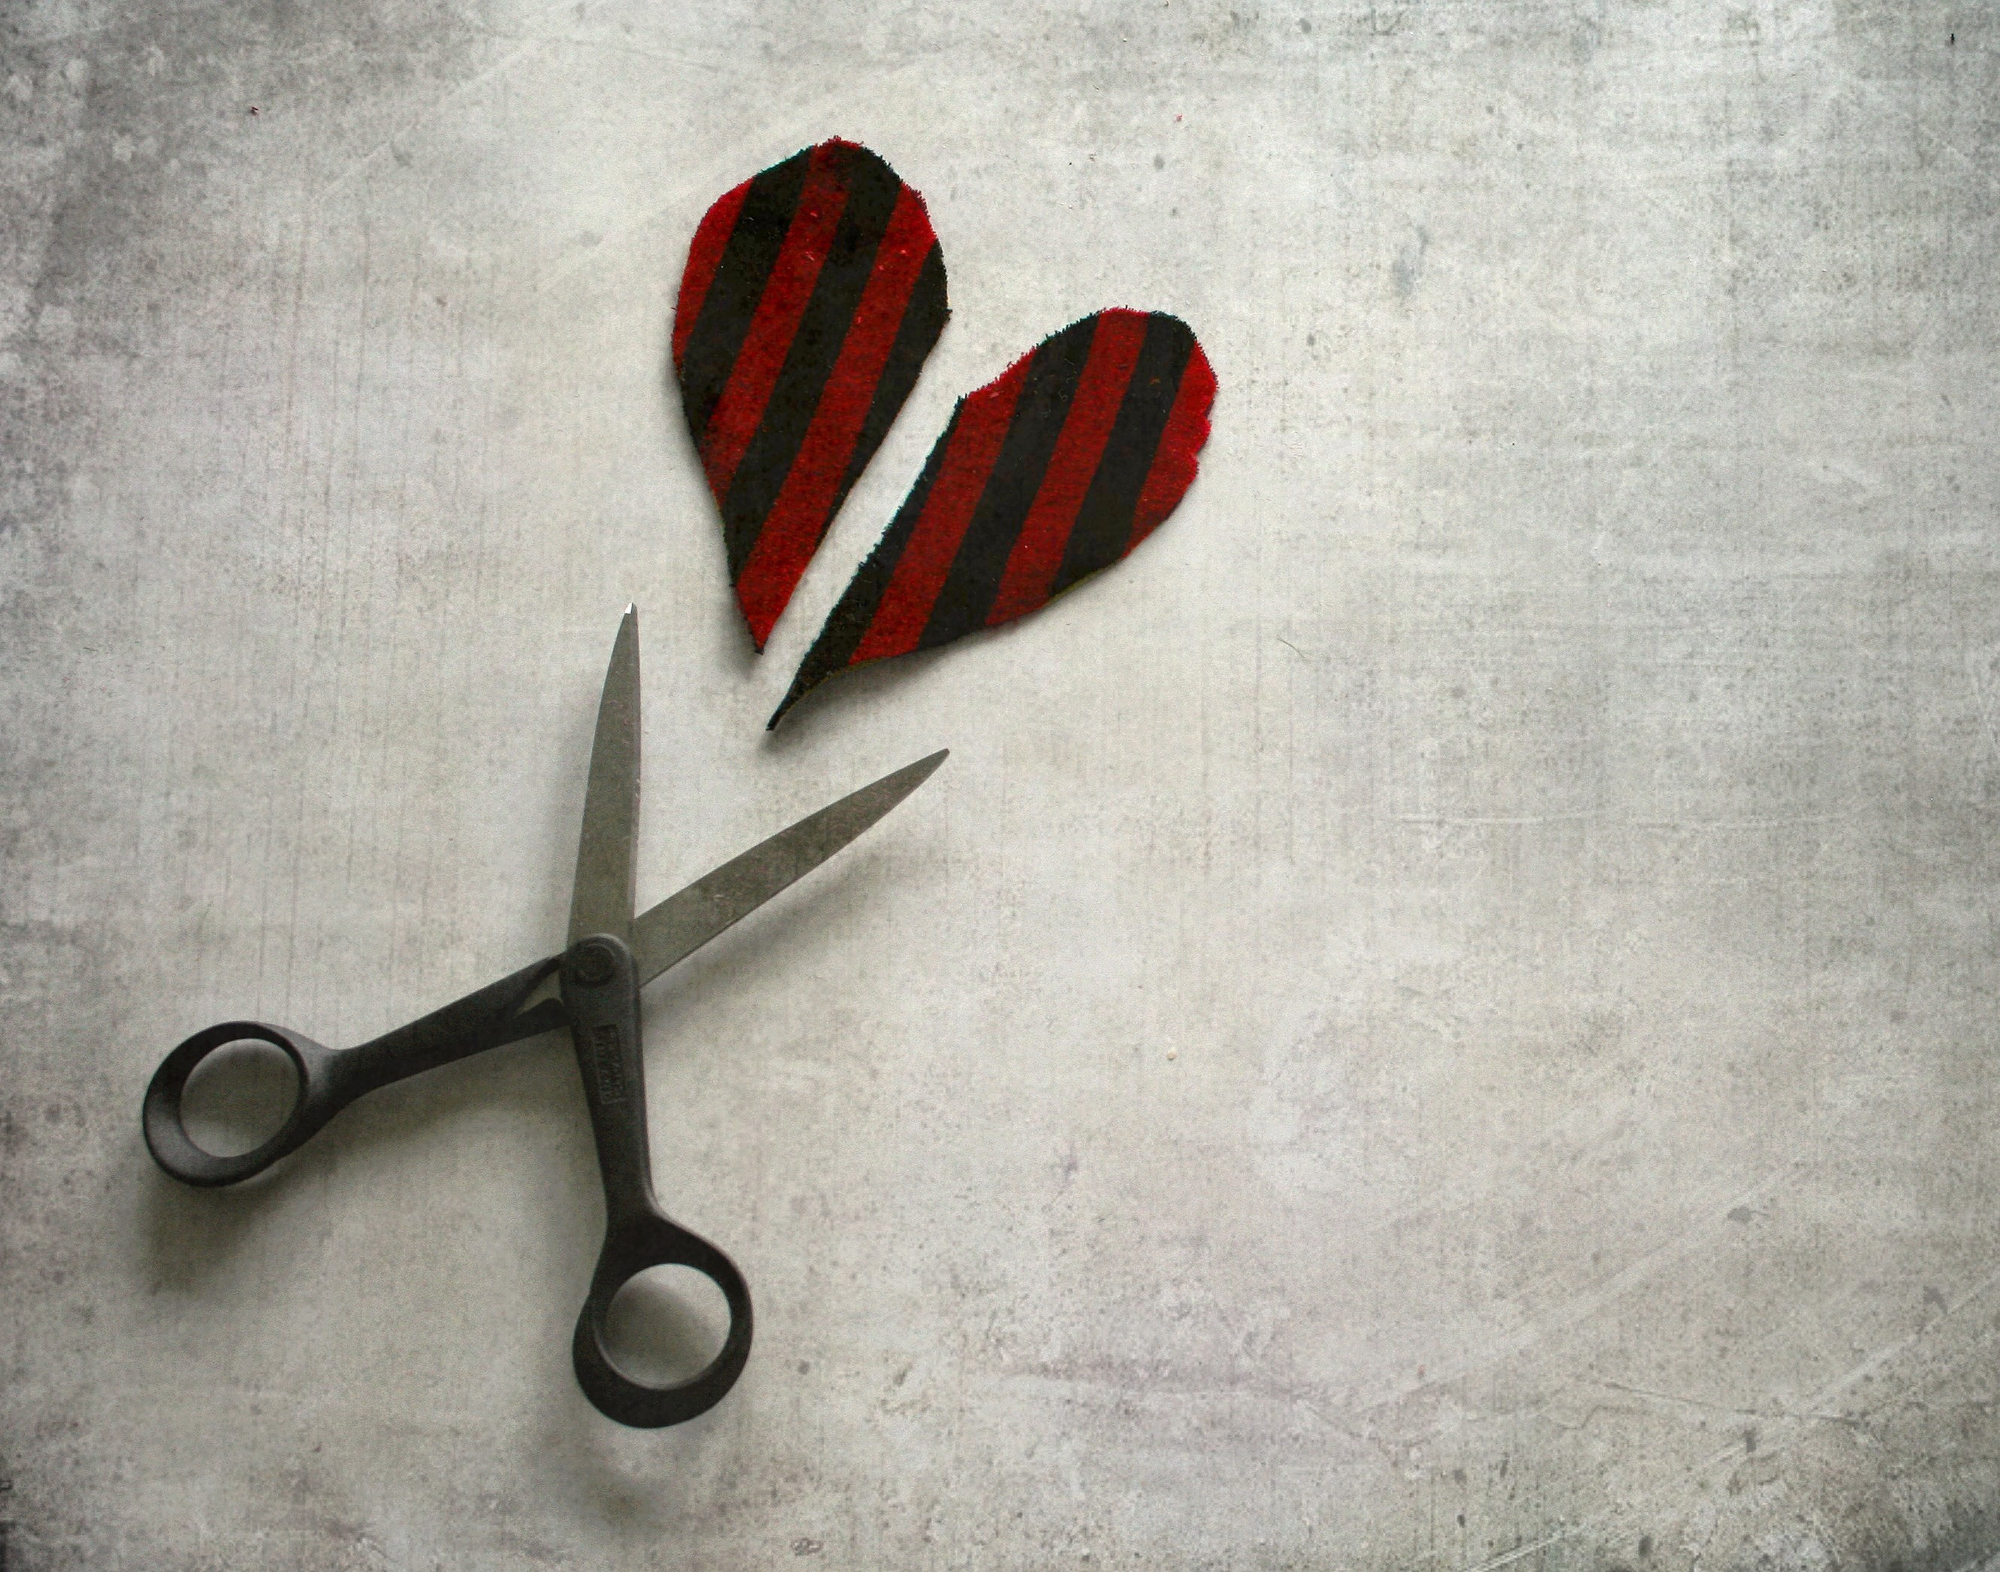 felt-heart-scissors-breakup-heartbroken